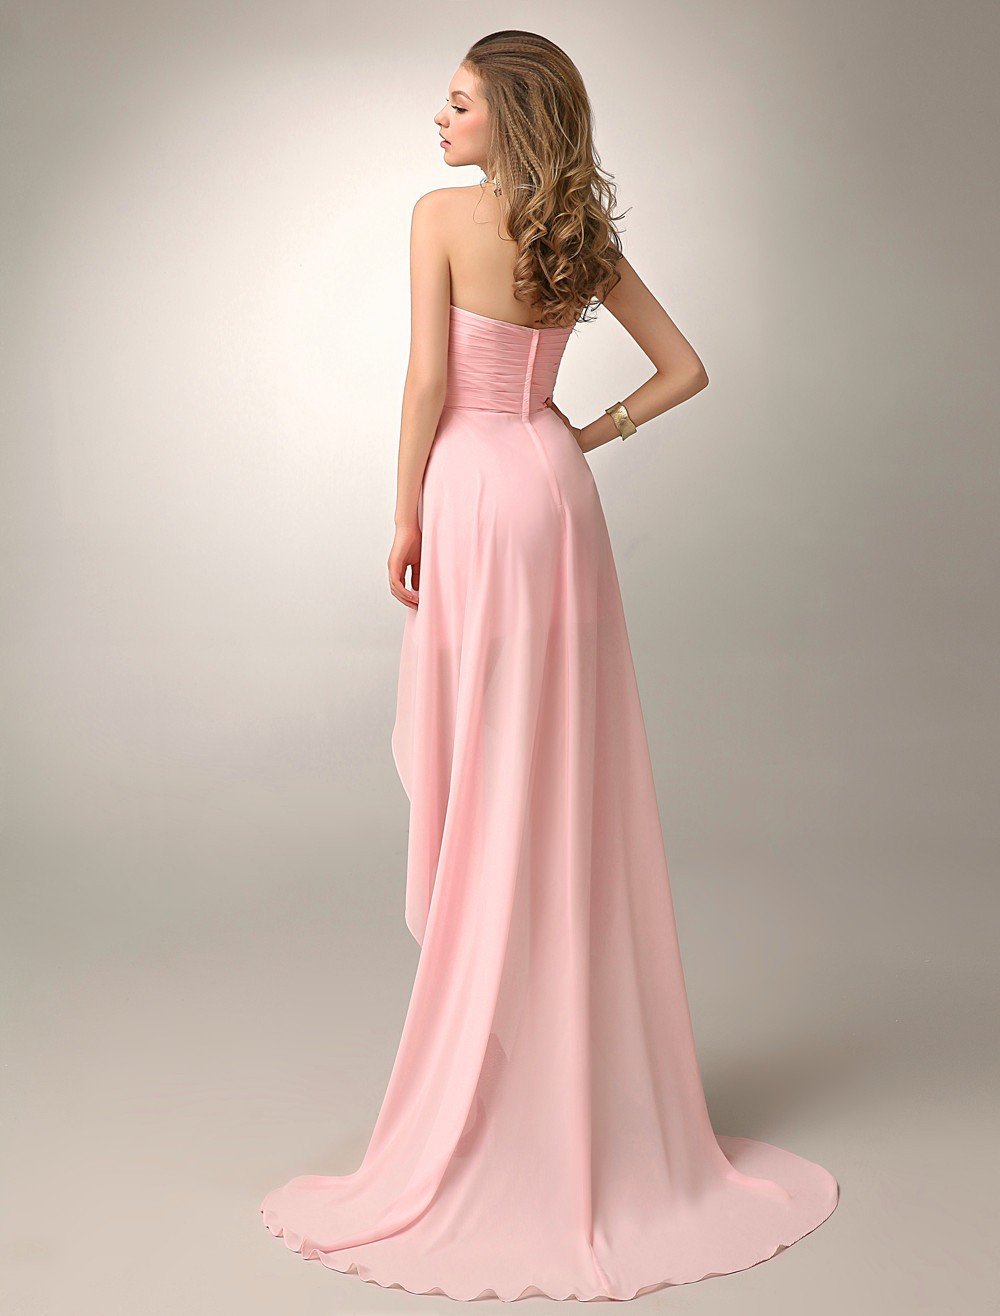 Best selling 2017 pink long cheap bridesmaid dresses under 80 best selling 2017 pink long cheap bridesmaid dresses under 80 sweetheart off the shoulder chiffon wedding party dress in bridesmaid dresses from weddings ombrellifo Gallery